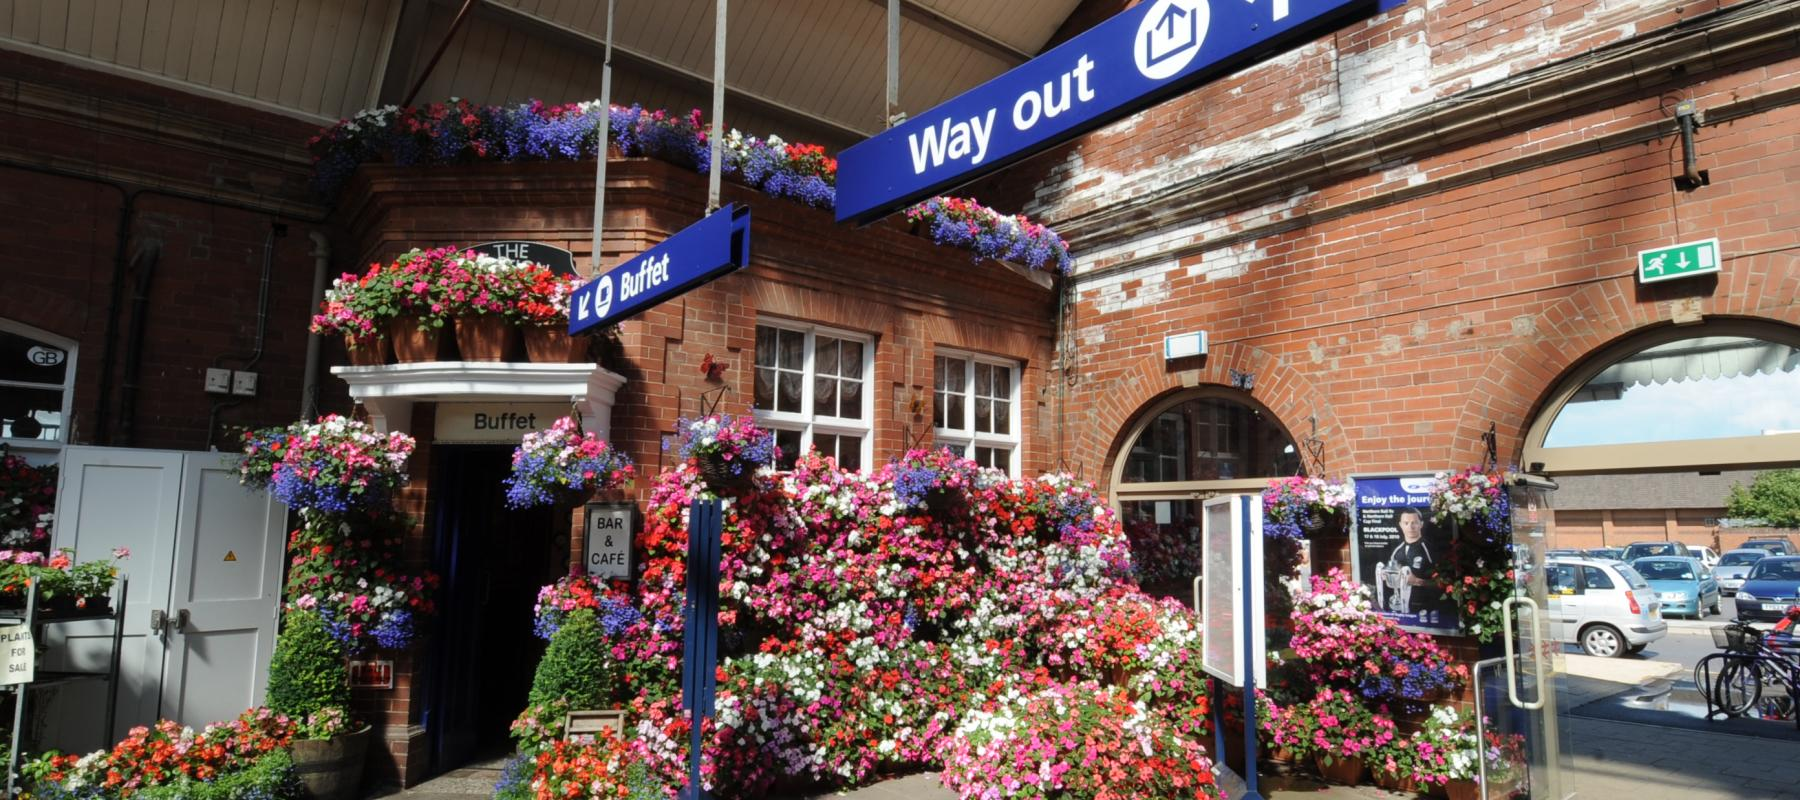 Bridlington Station Flower Display, along the Yorkshire Wolds Coast Line